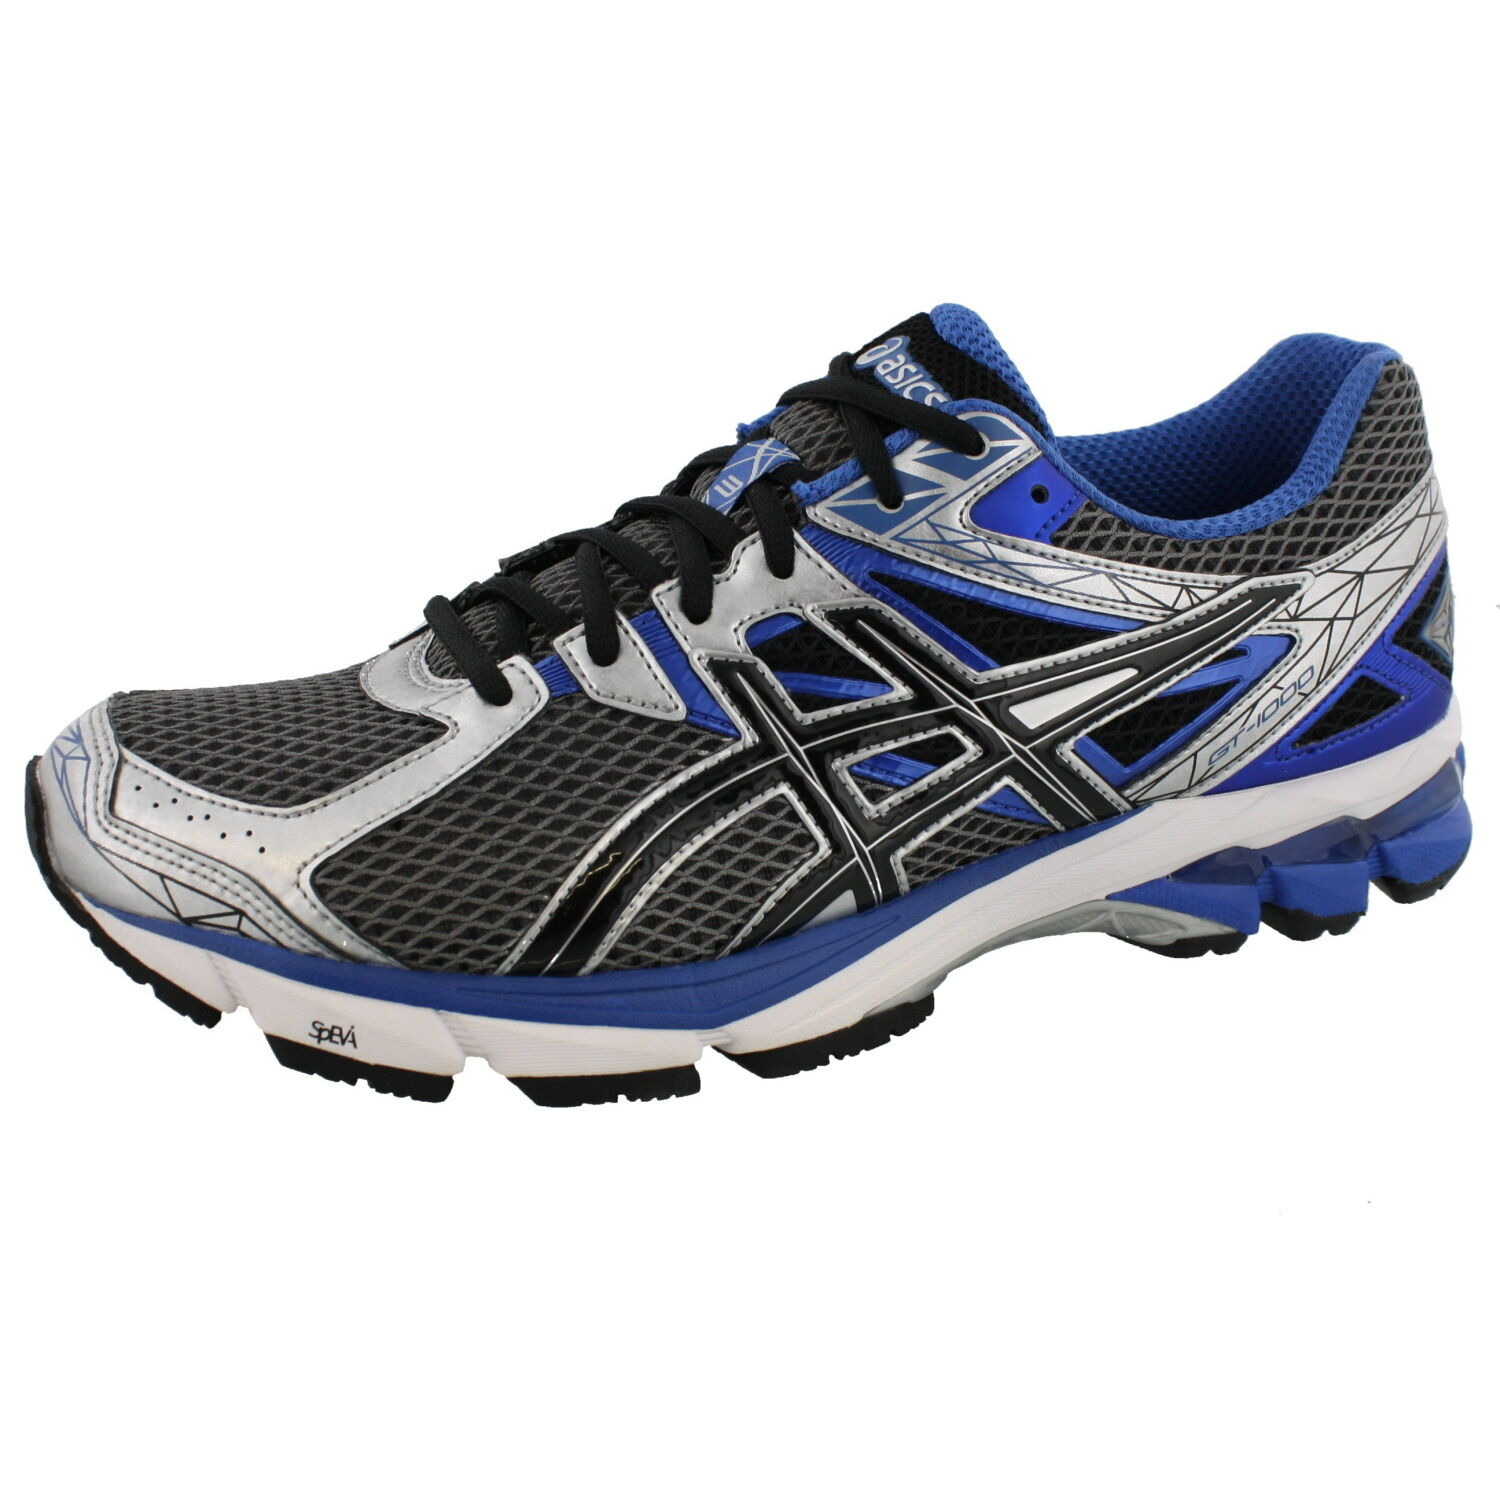 ASICS GT 1000 3 Running Shoes Mens Size 9 4e Extra Wide Width for ... 54b5f77b4a